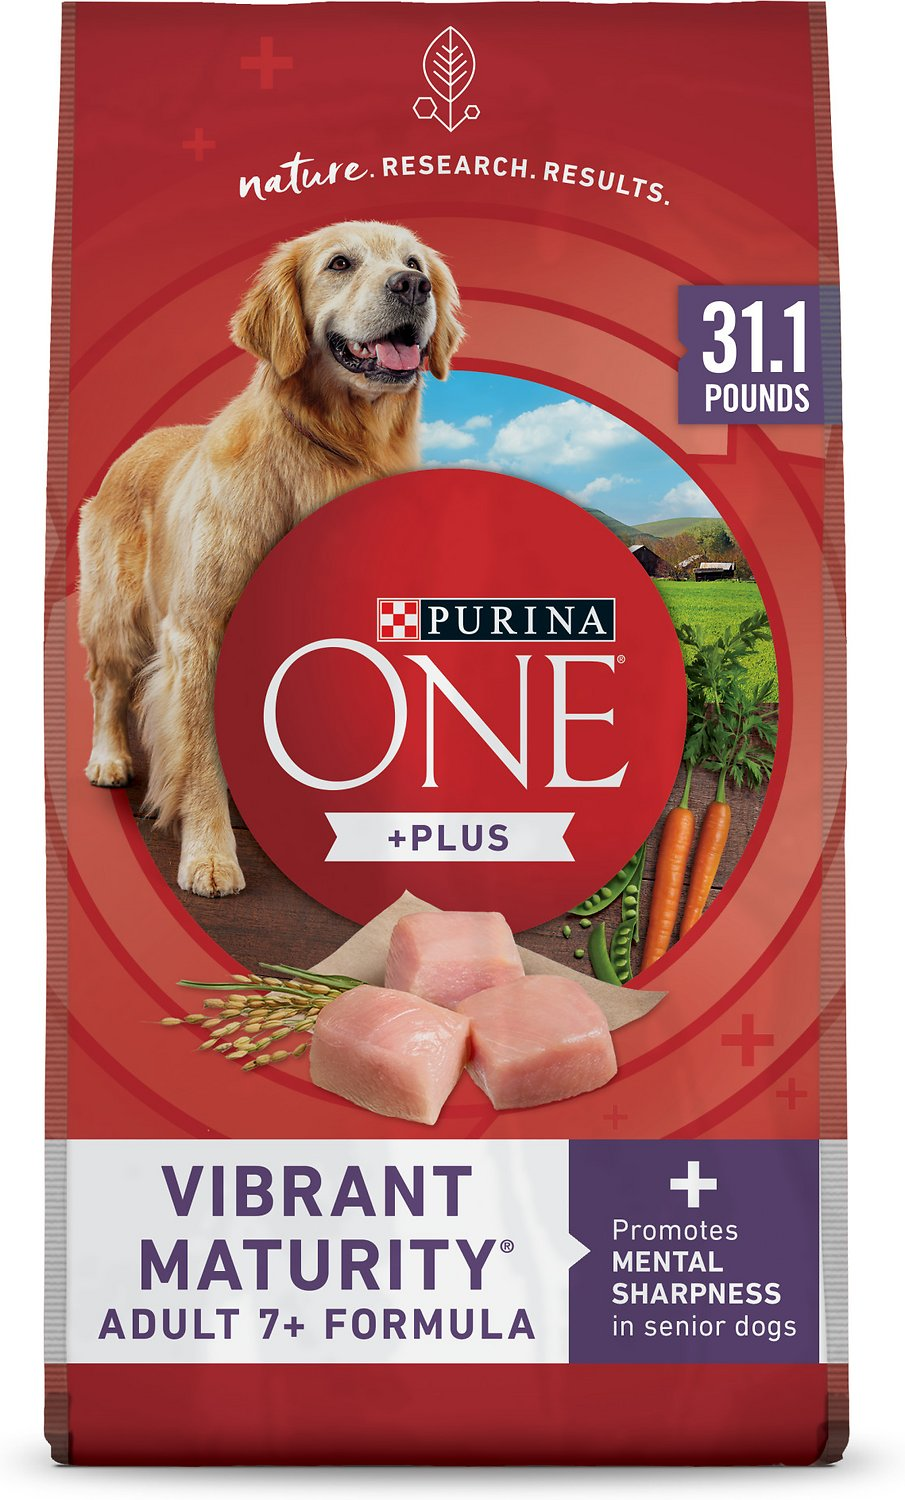 Purina ONE SmartBlend Vibrant Maturity 7+ Adult Formula Dry Dog Food,  31 1-lb bag